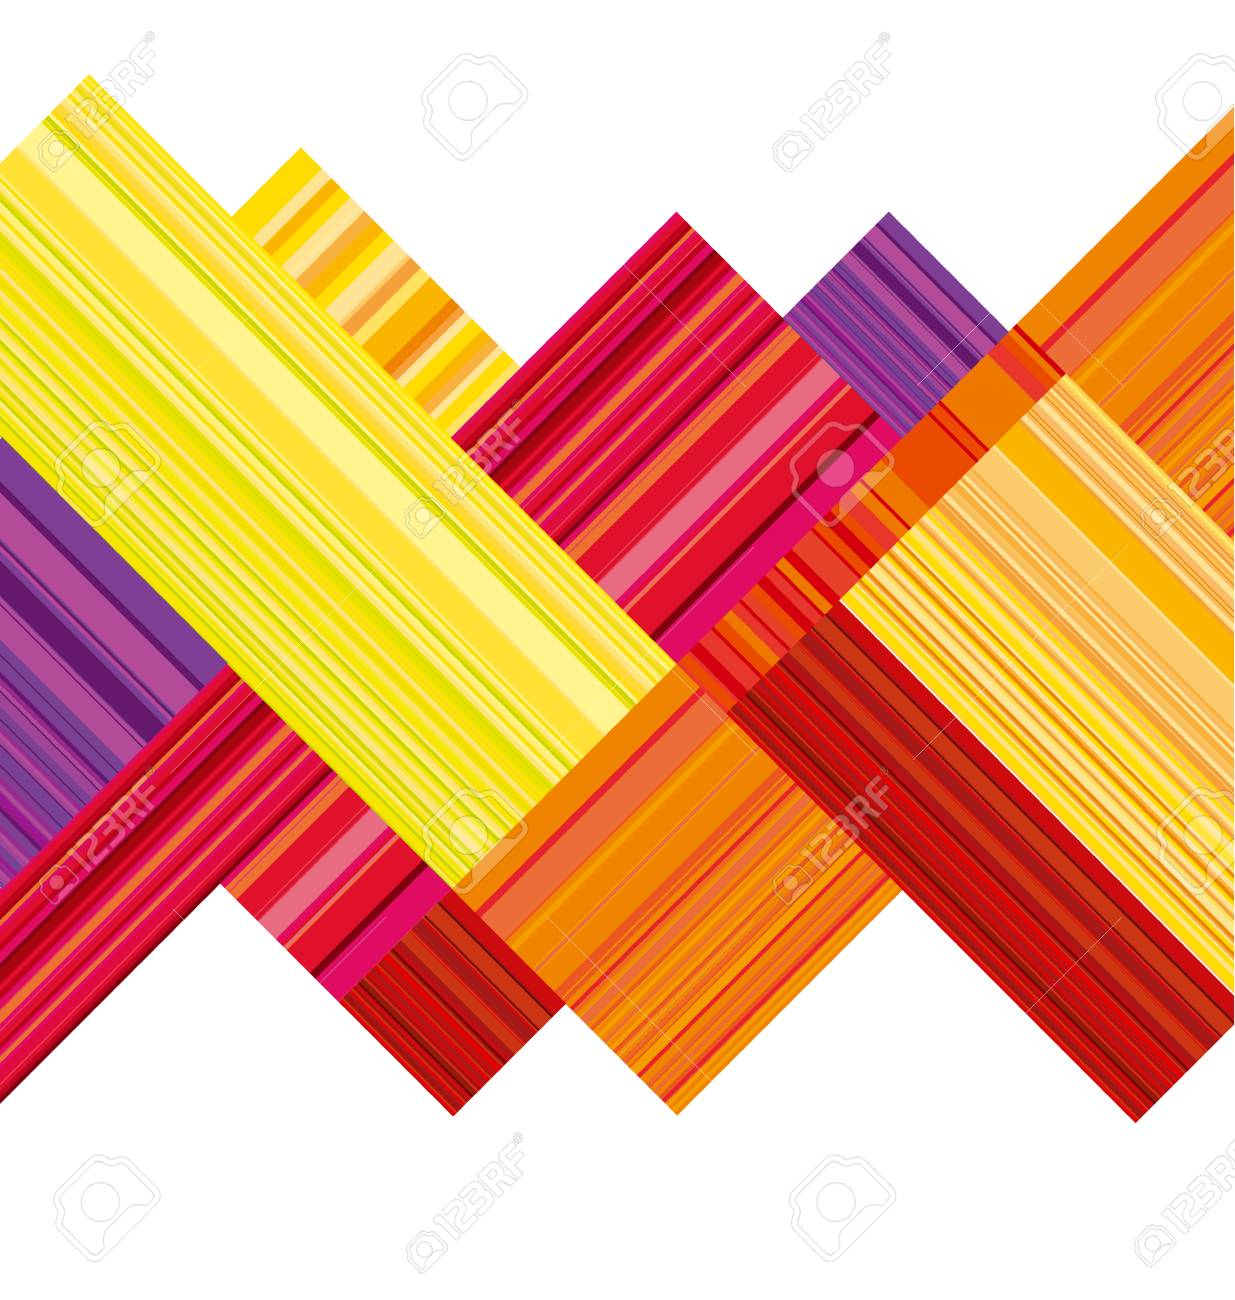 Red And Orange Abstract Header. Vector Wallpaper With Colorful ...